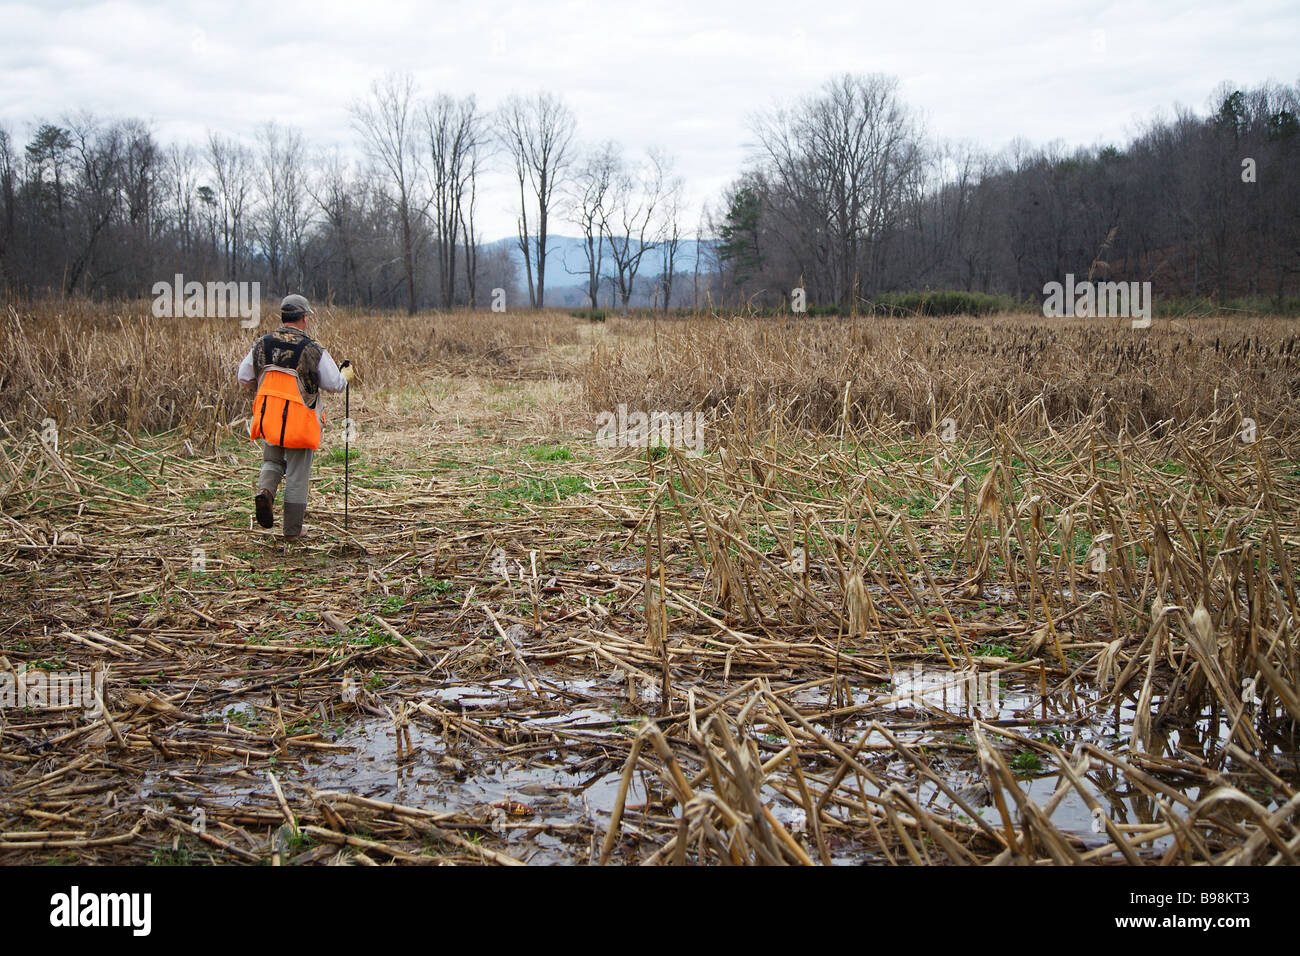 84551d1d21743 HUNTING GUIDE WALKING AN OPEN FIELD CABELLAS ORANGE CARRY VEST BROWNING HAT  LL BEAN PANT -